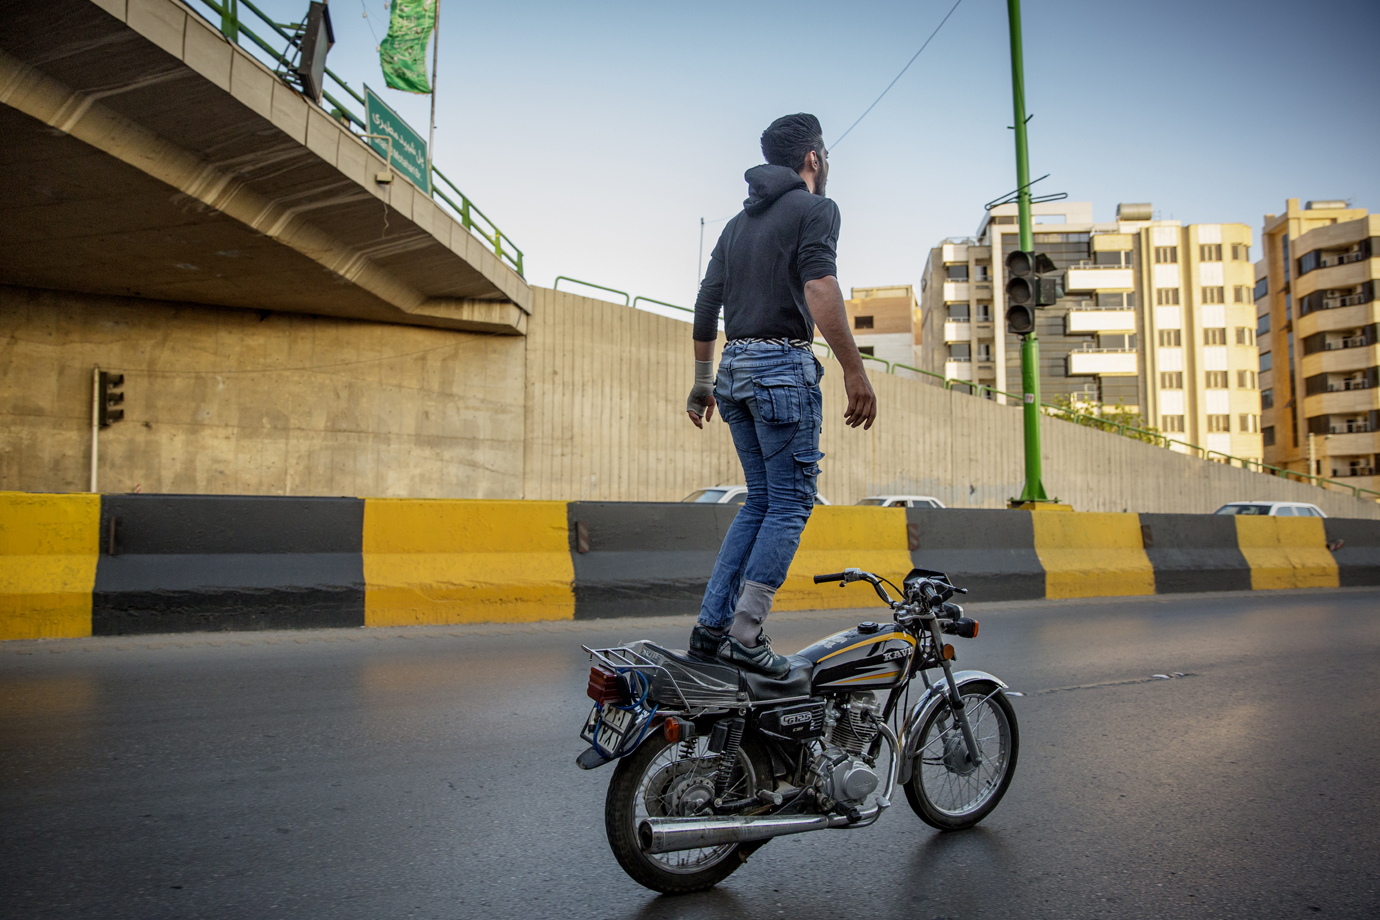 Motorcycle rider makes daring stunts with his bike on Tehran's highway / Iran